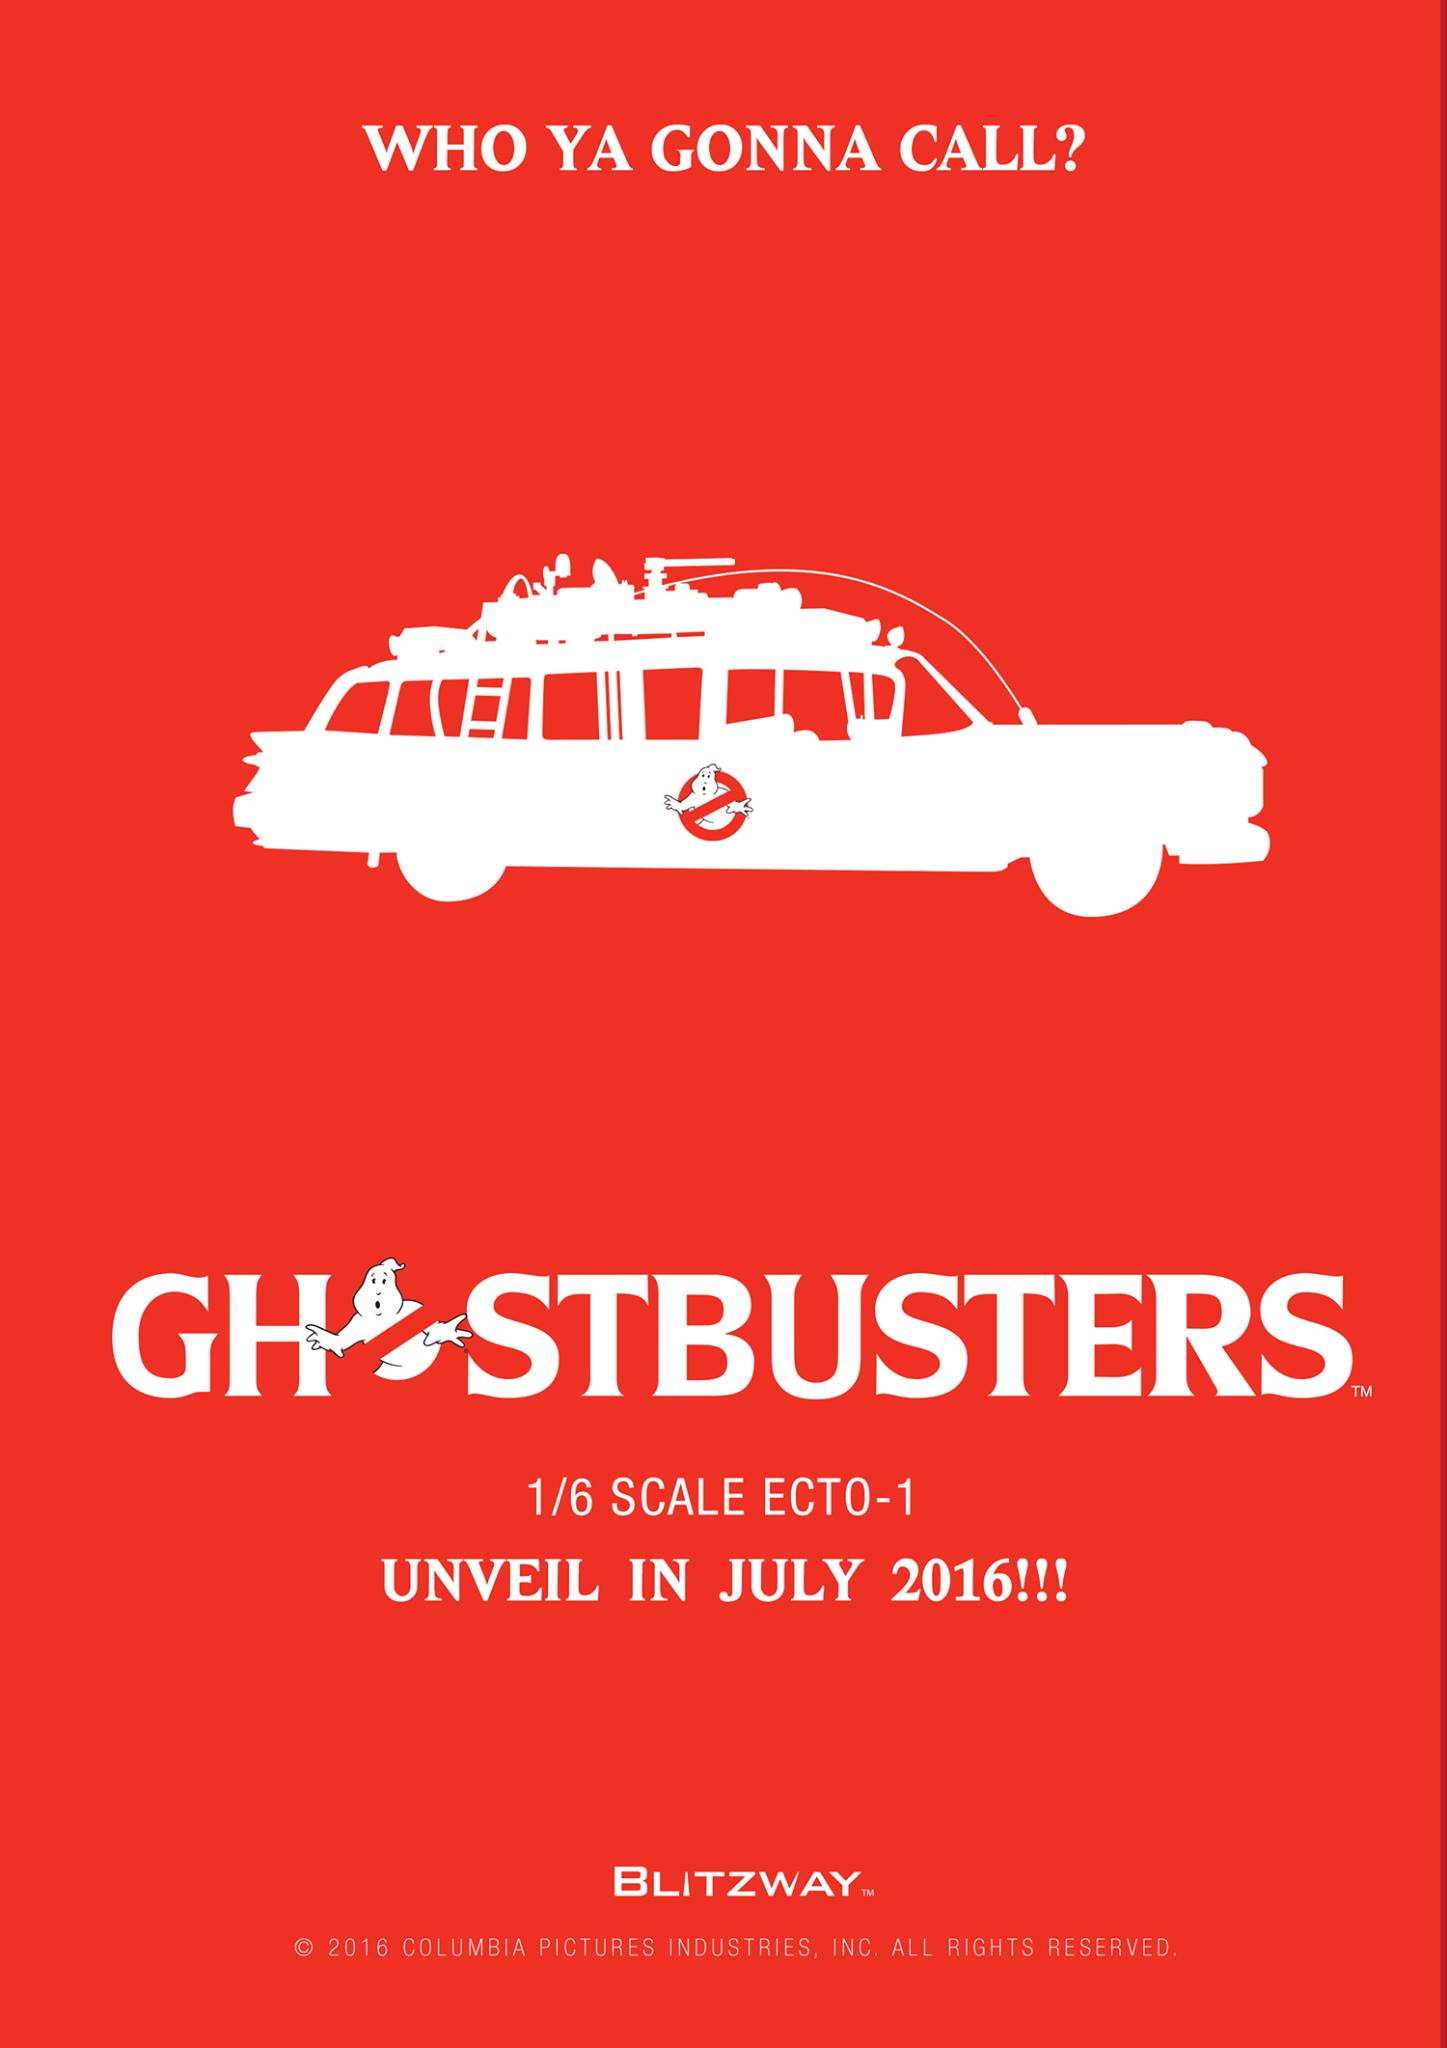 Blitzway-Ghostbusters-Announcement